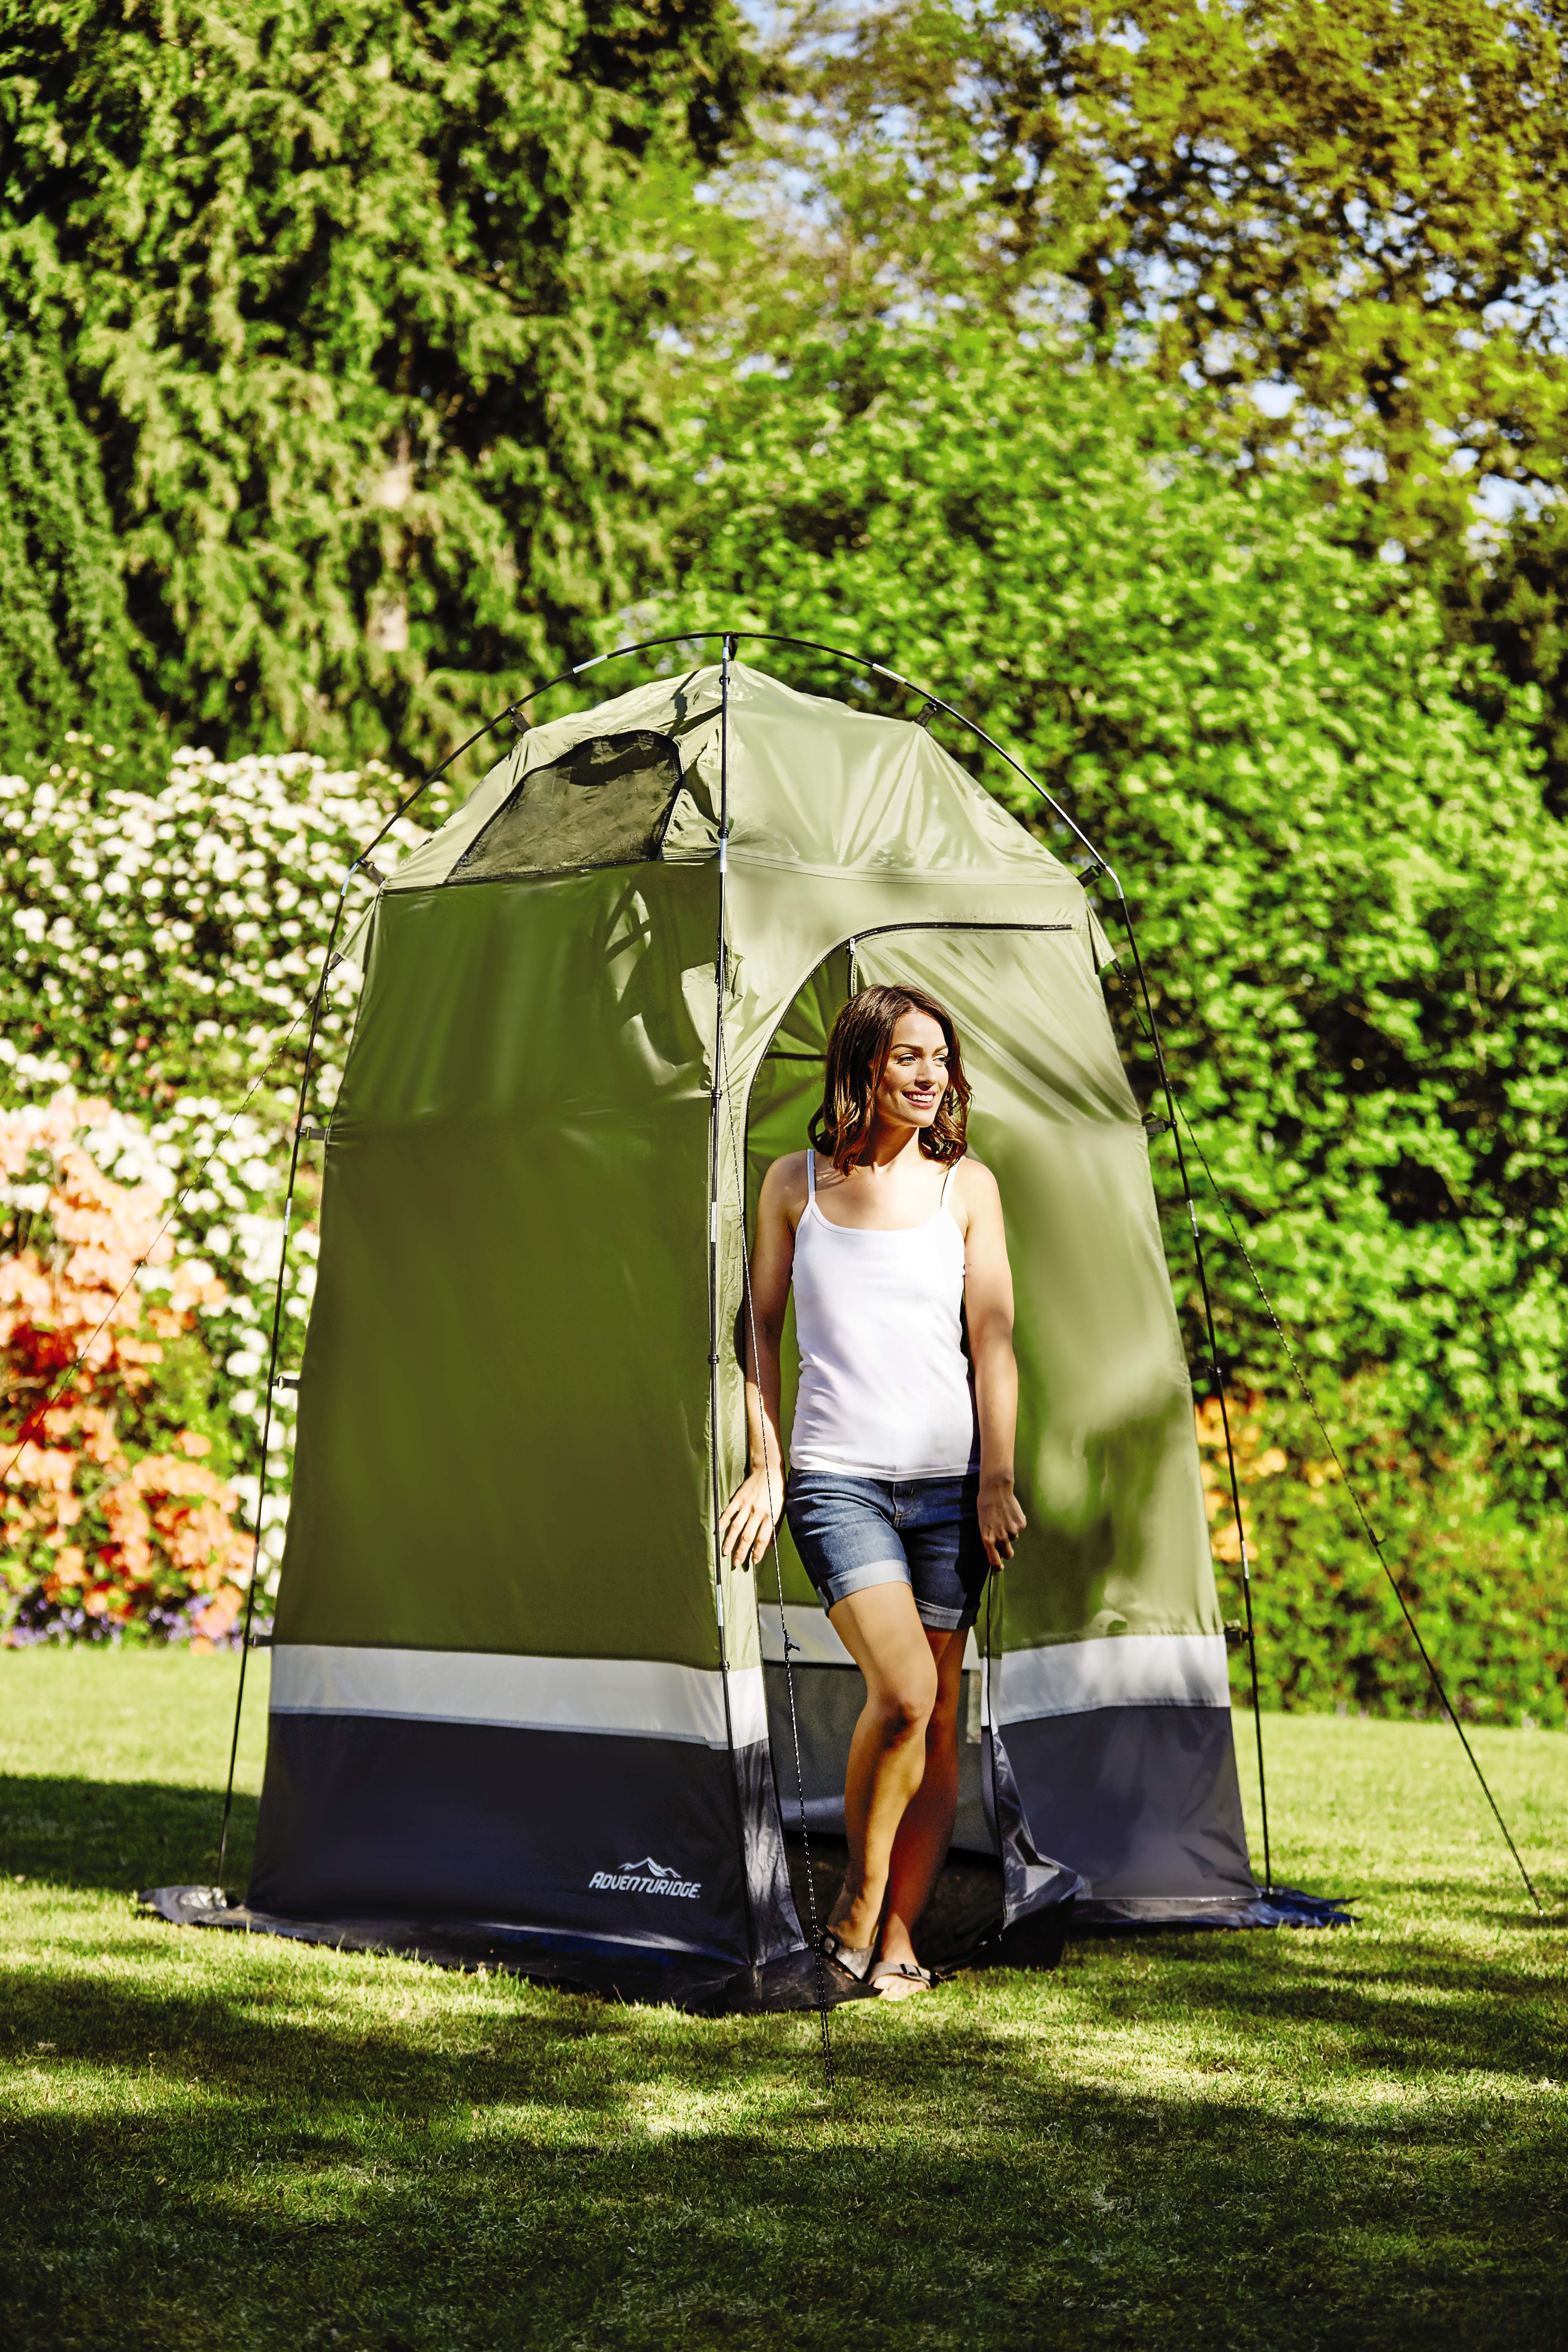 The New Aldi Family Camping Essentials Range Lands Sunday